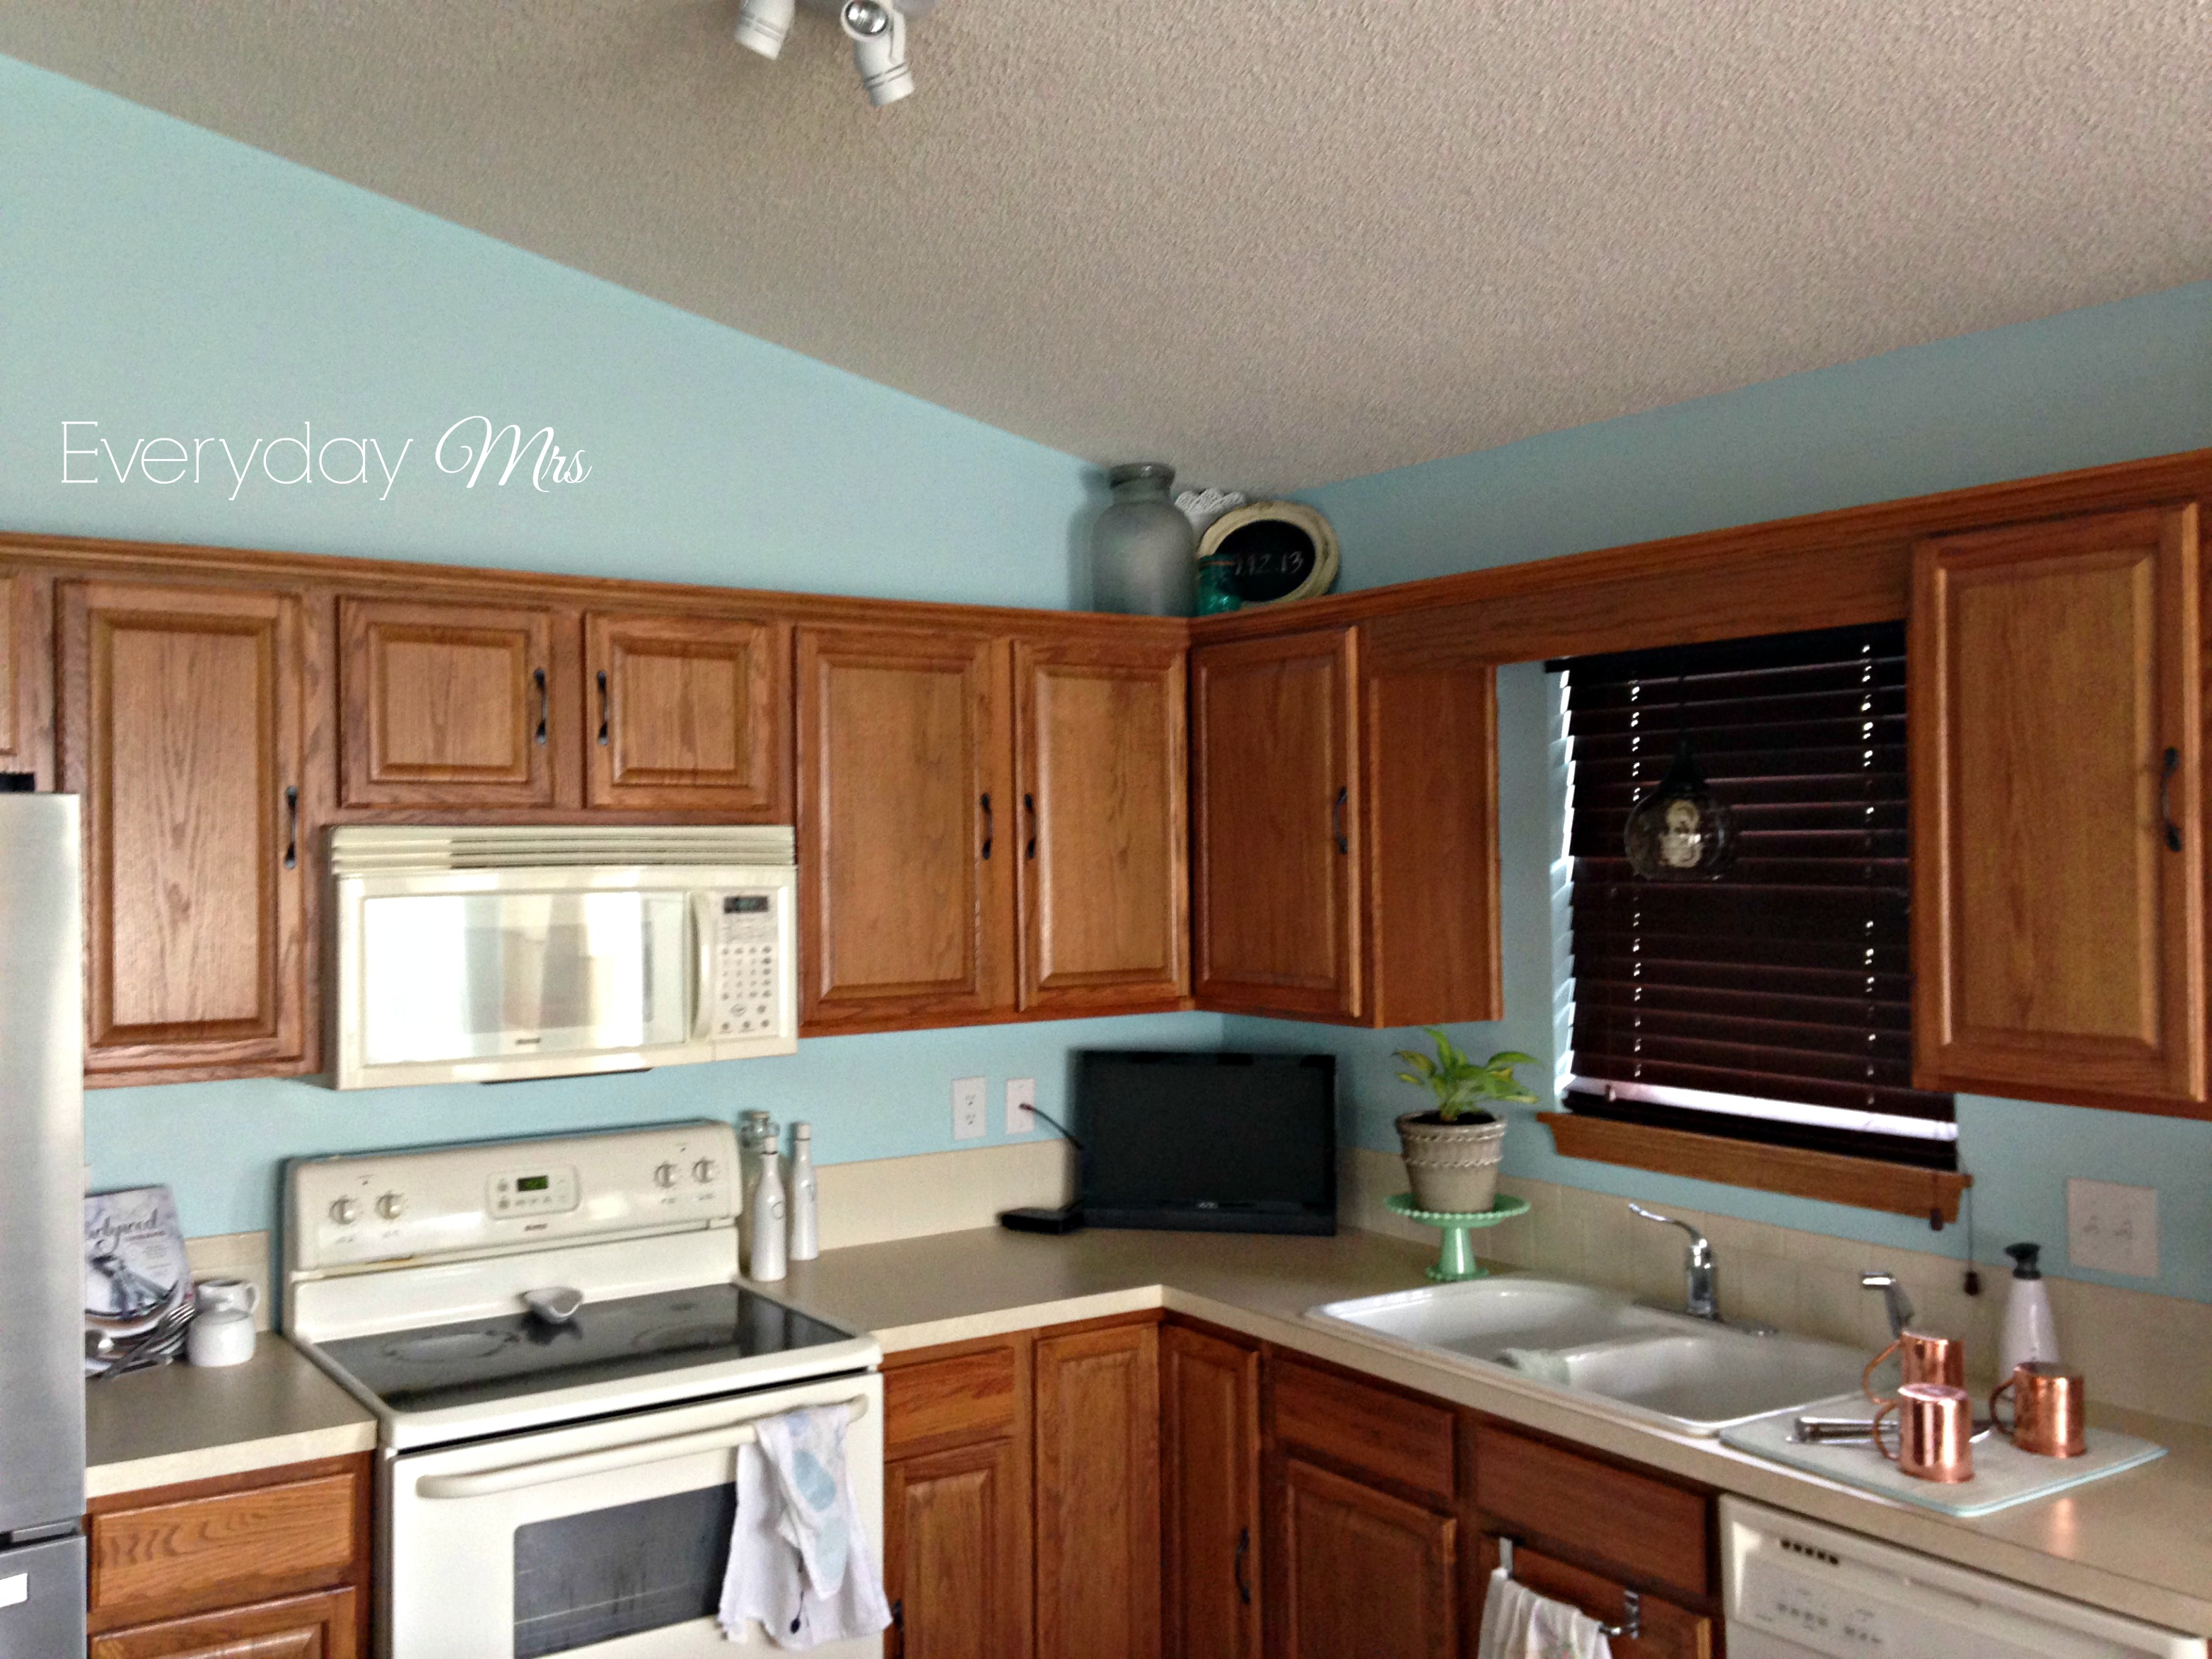 Kitchen transformation everyday mrs for Kitchen wall colors with honey oak cabinets